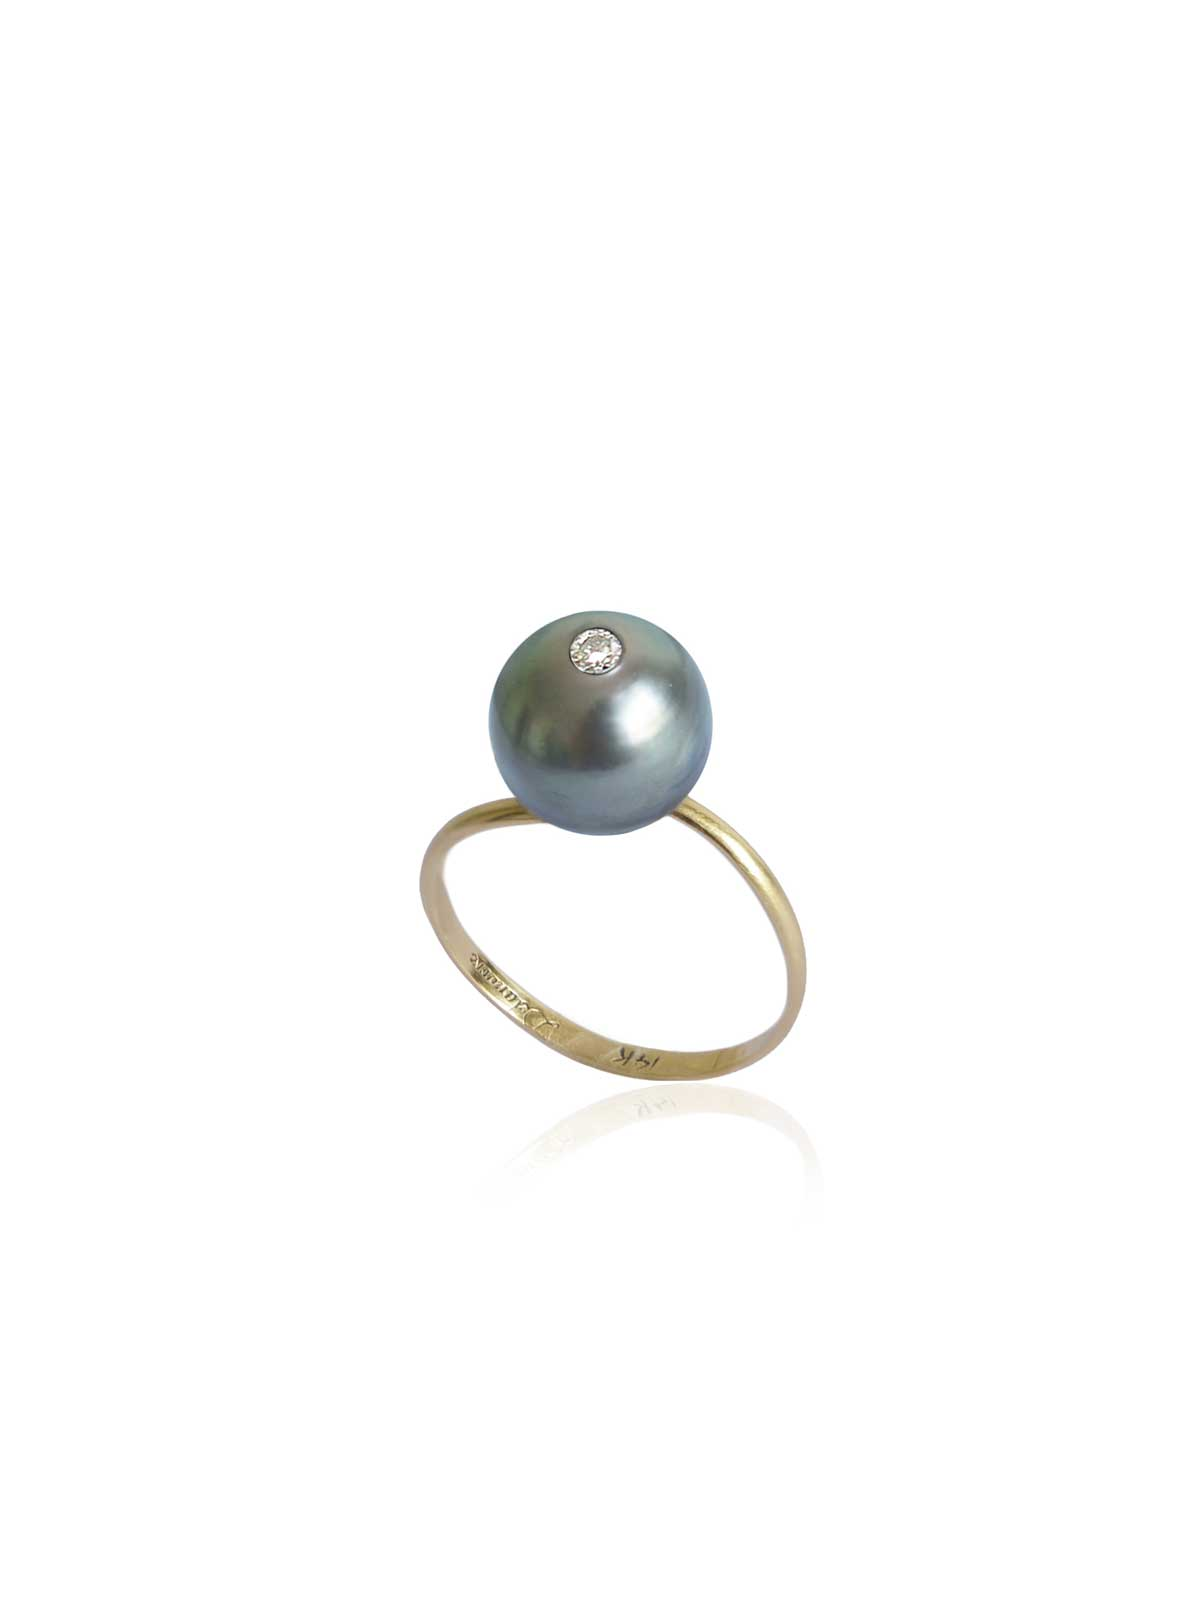 ETERNITY RING Tahitian Baroque Pearl, White Diamond 14K yellow gold